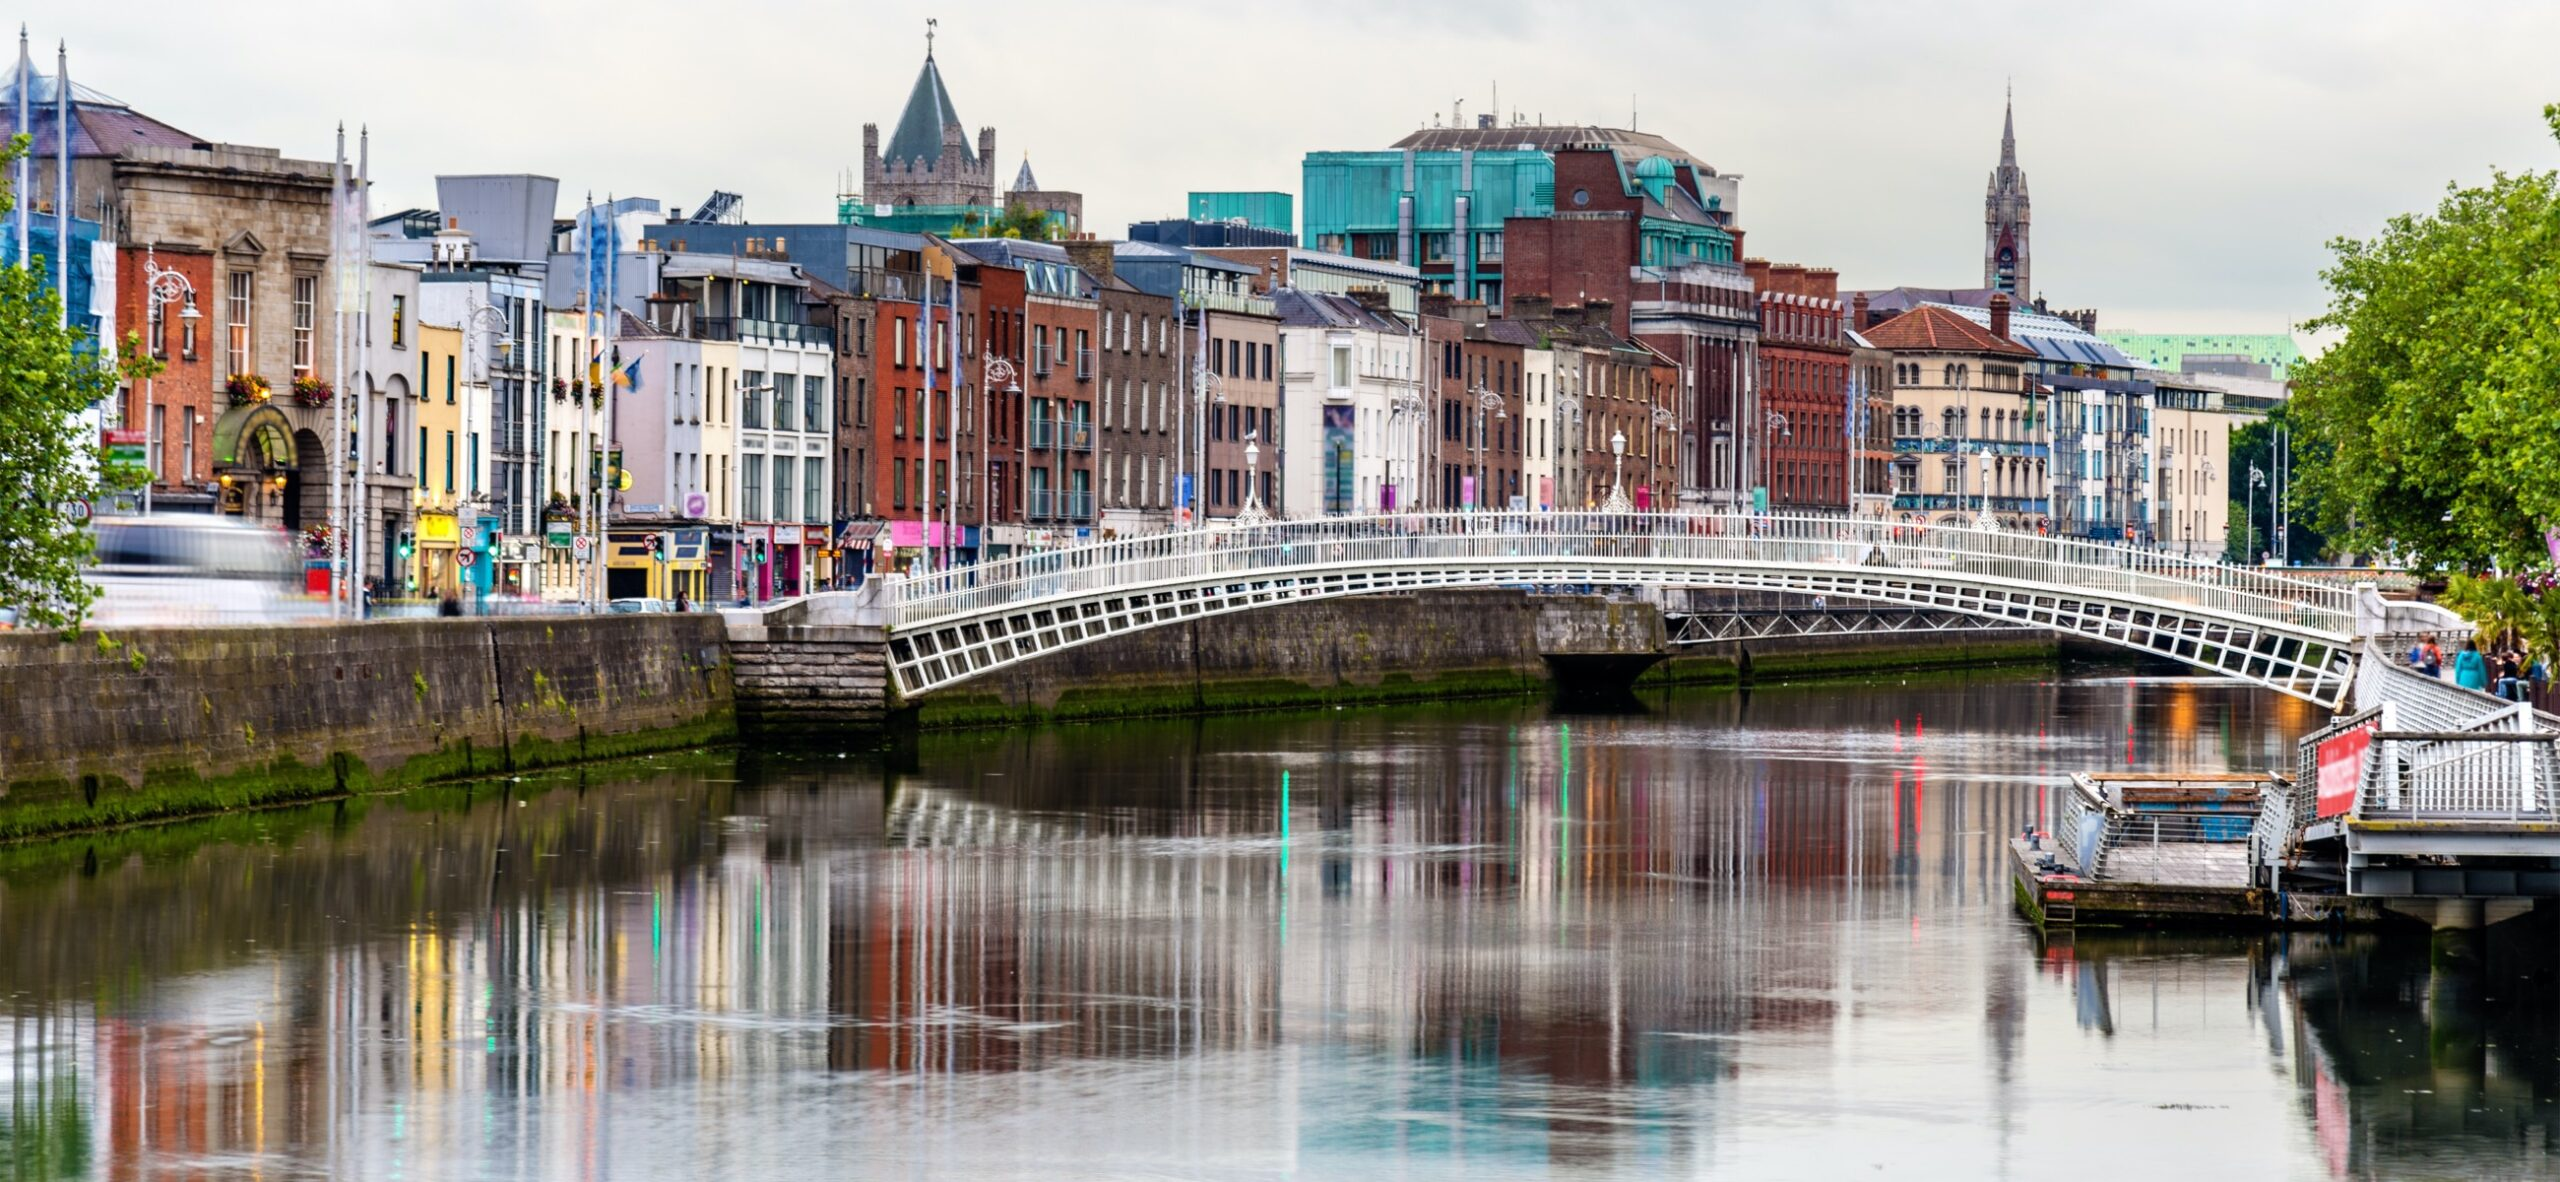 Raise-a-glass-to-Dublin-The-City-that-knows-how-to-Party